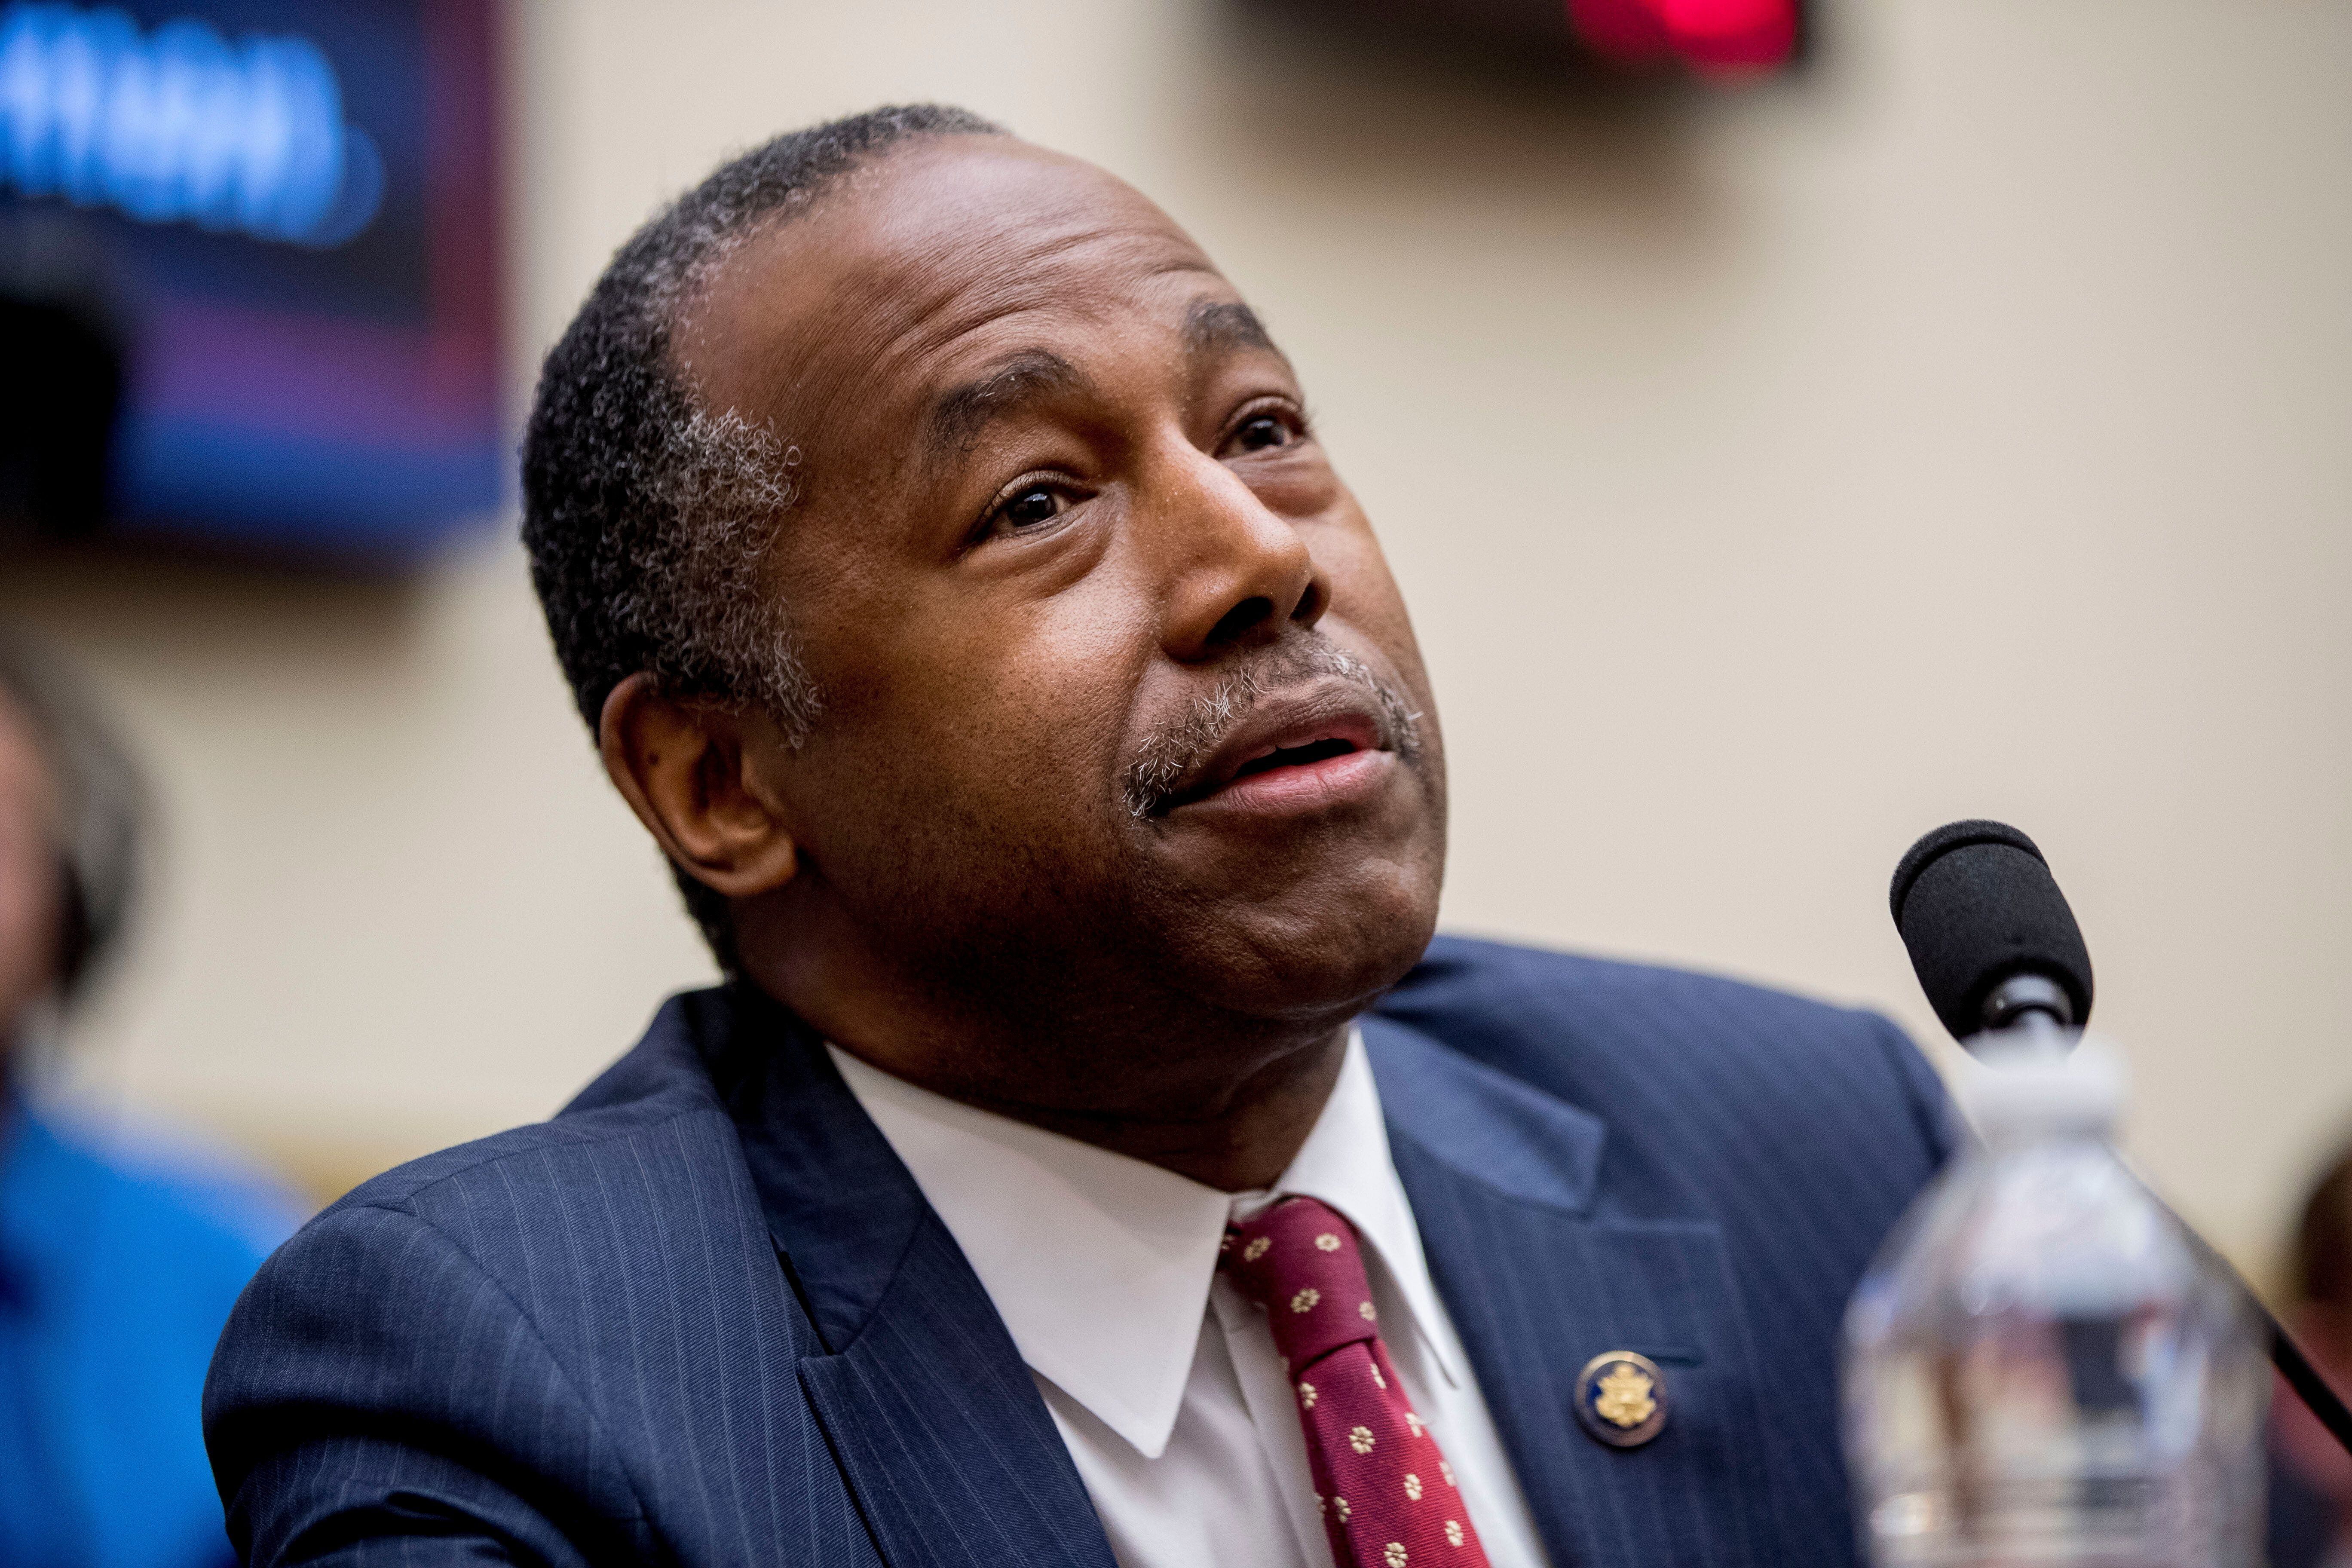 Lawmaker Urges Ben Carson To Resign After Disastrous House